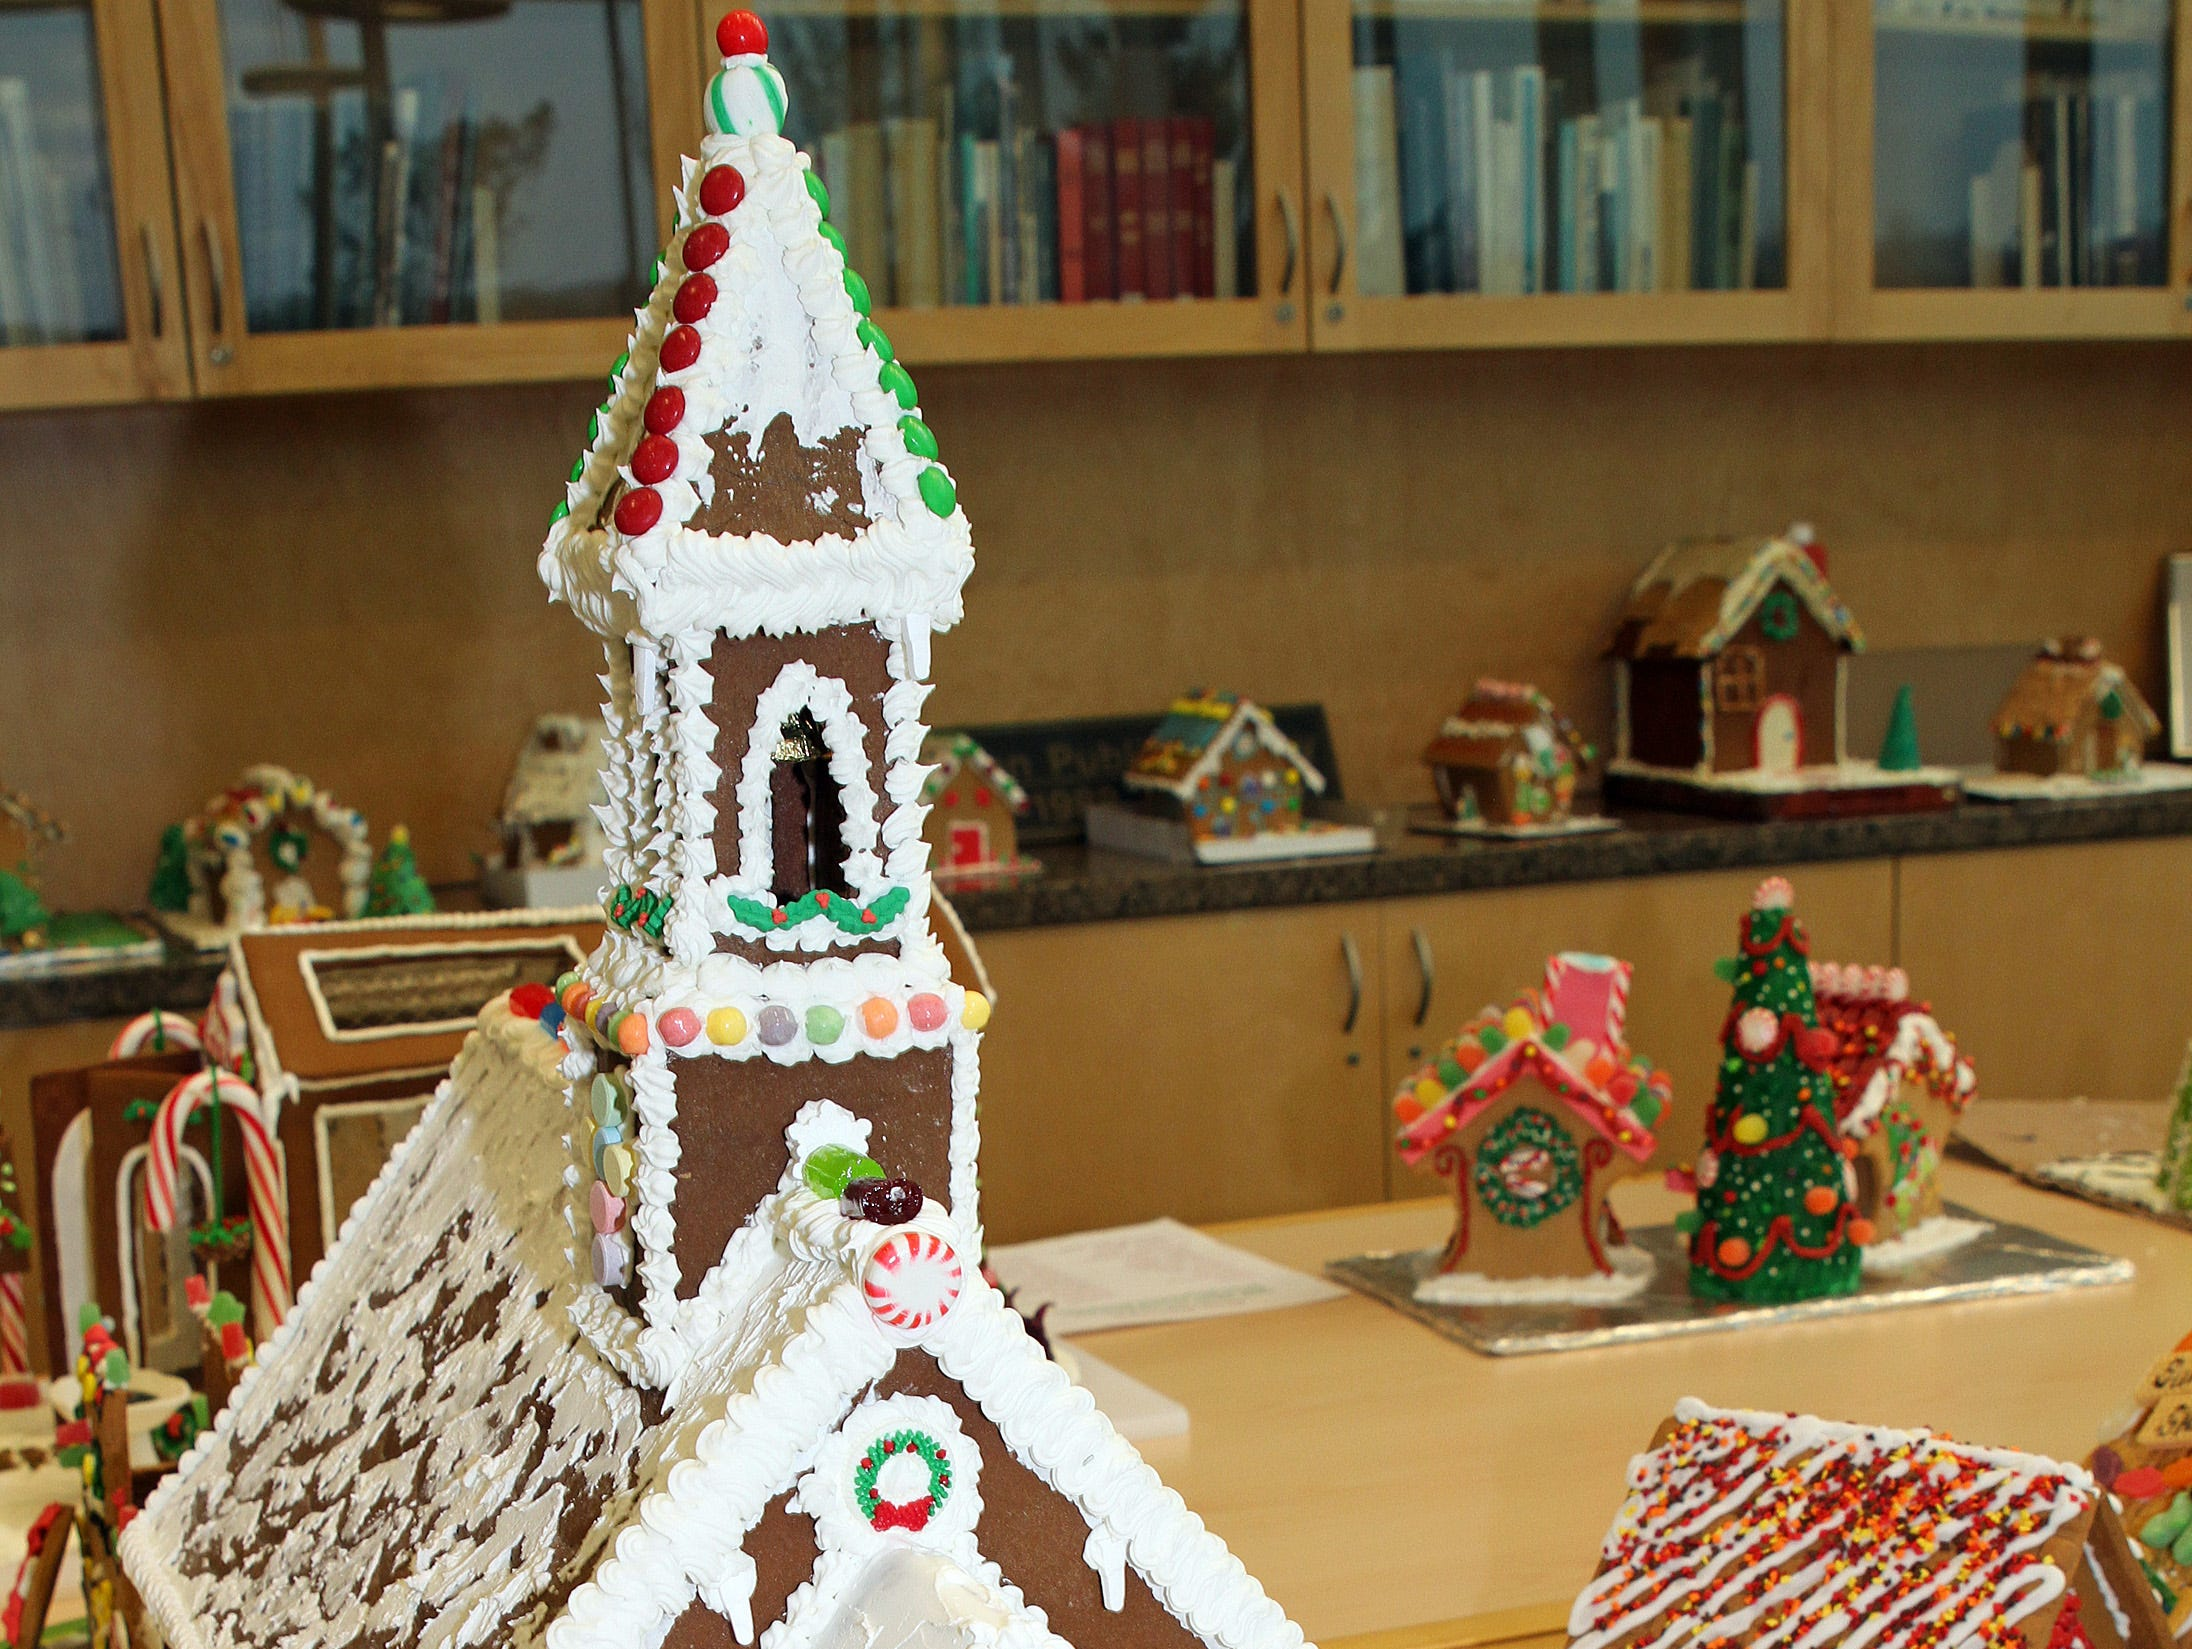 Gingerbread houses are on display during Holidays in Johnston on Saturday, Dec. 1, 2018 at the Johnston Public Library featuring a gingerbread house contest, cookie decorating, holiday music performed by the Johnston Middle School Ninth Grade Chamber Choir, story time and Santa.